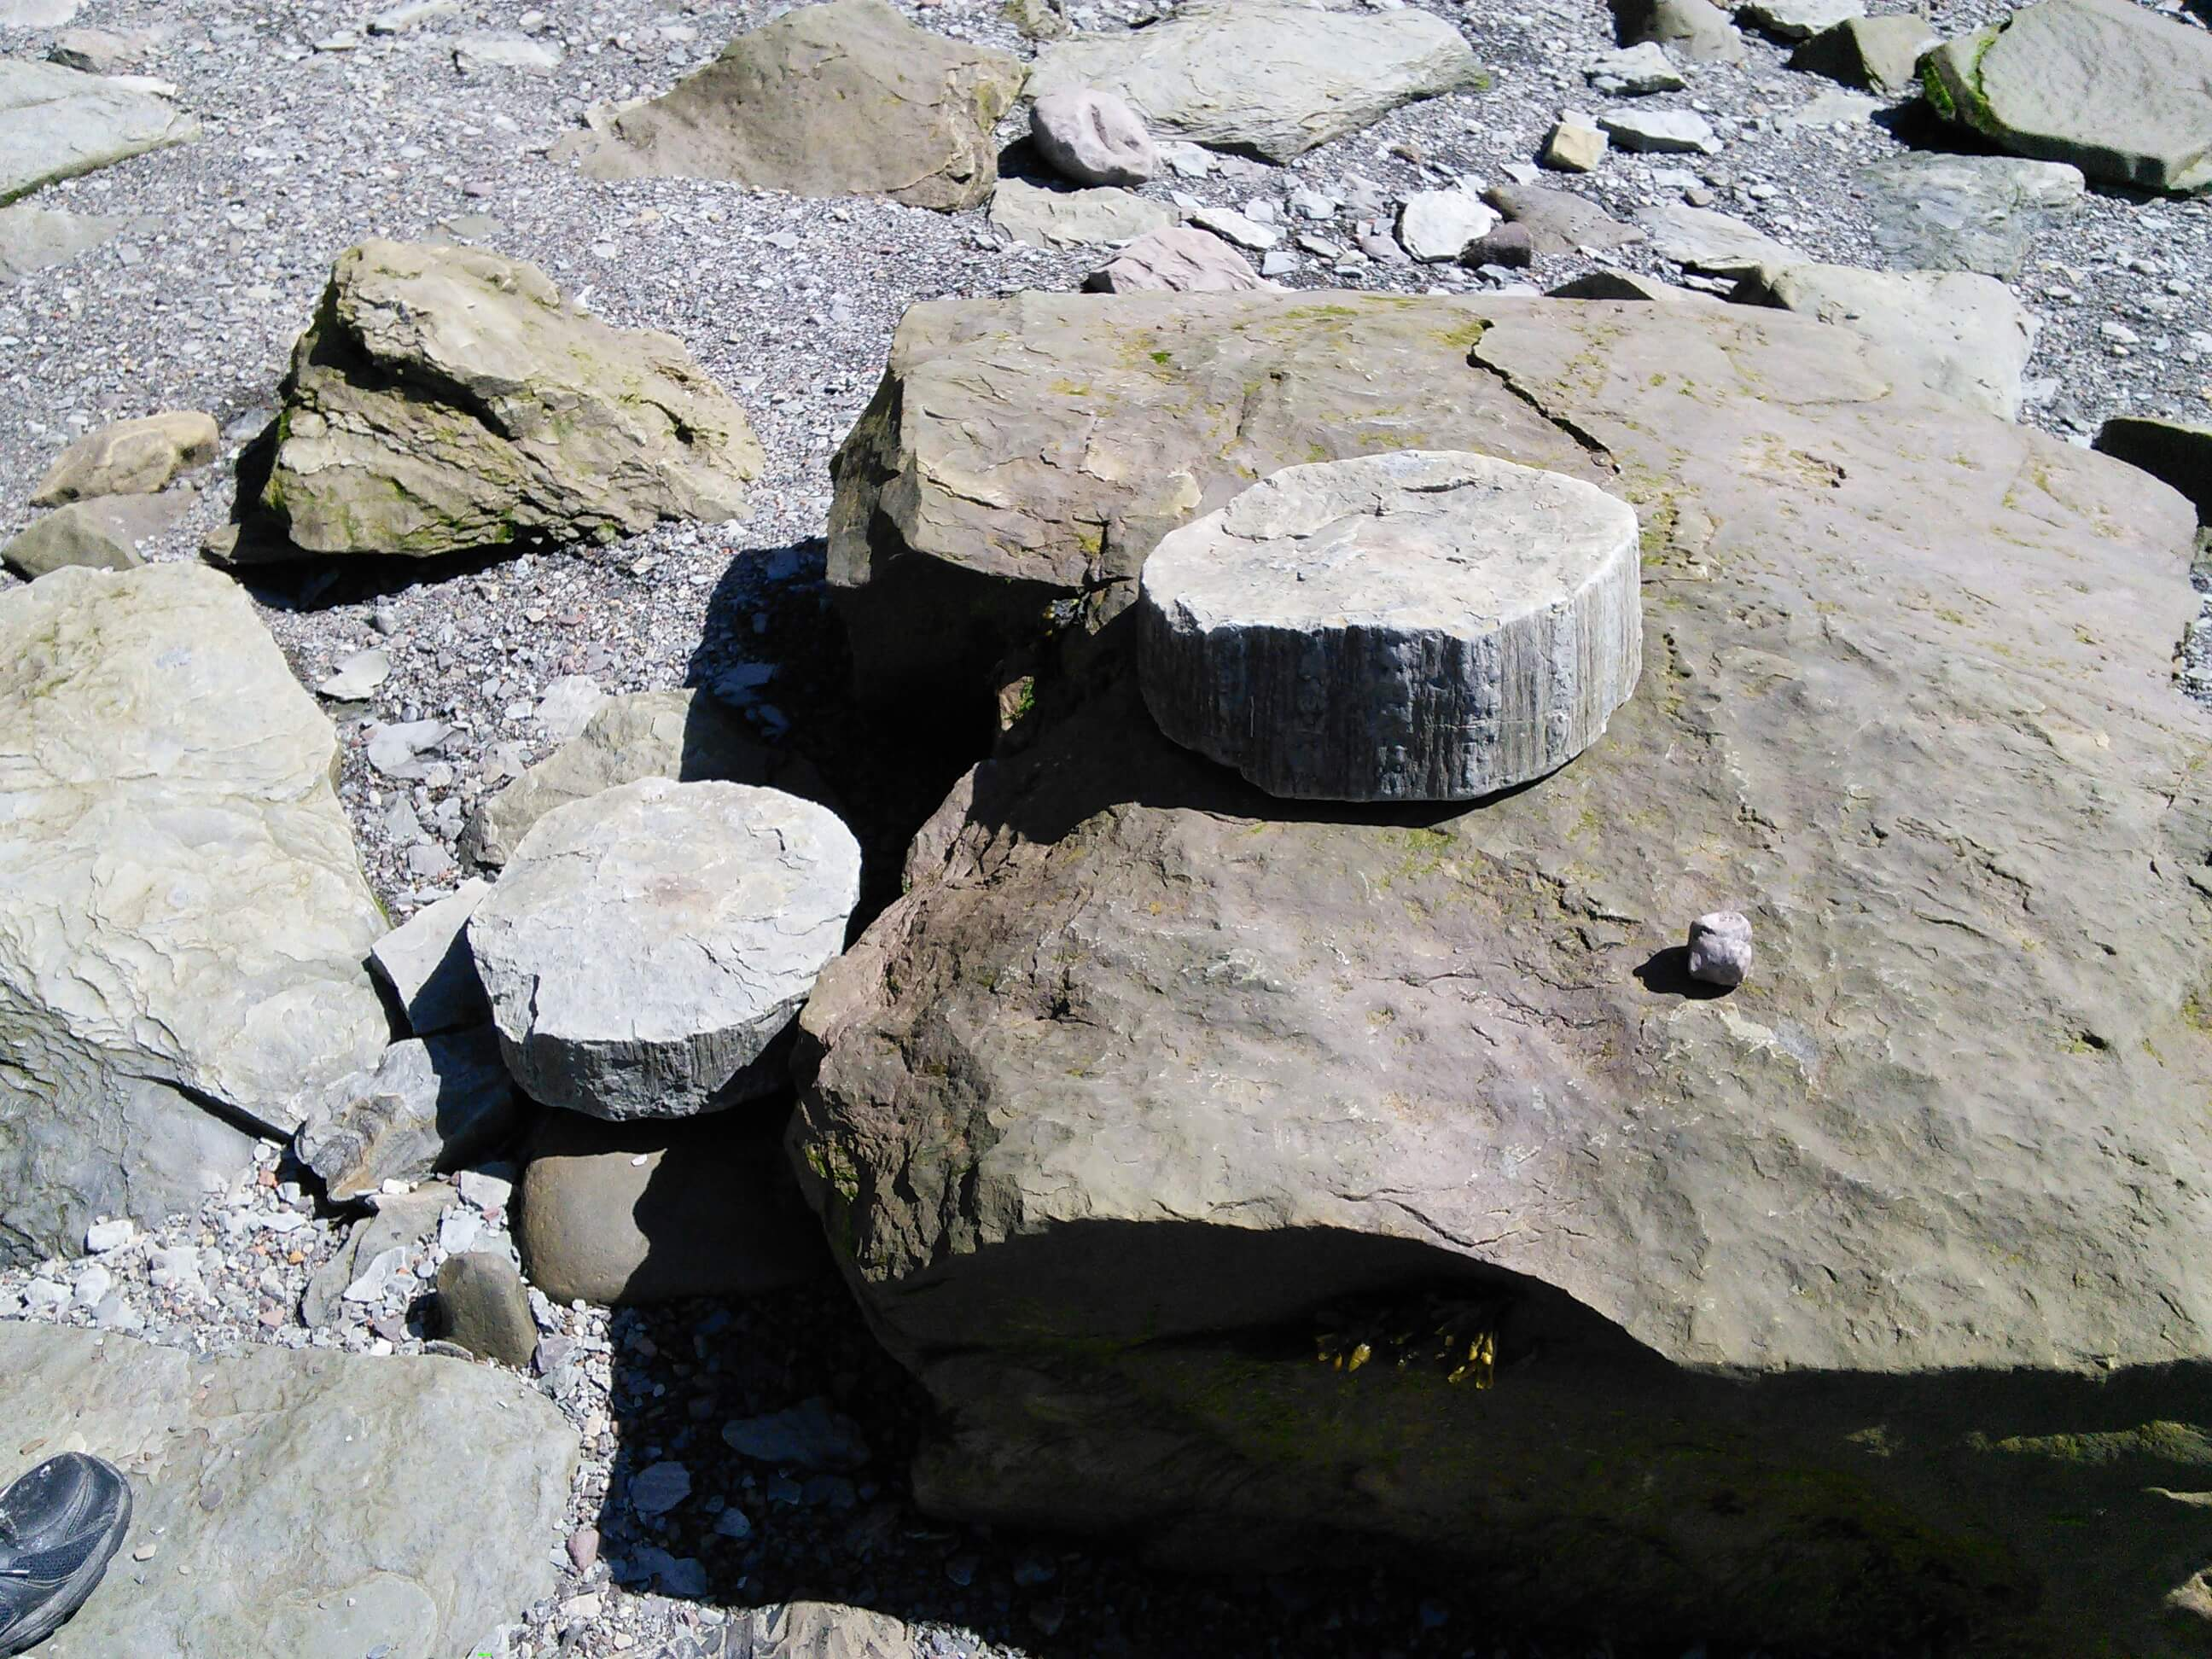 Sections of fossil tree trunk, Joggins Fossil Cliff, NS